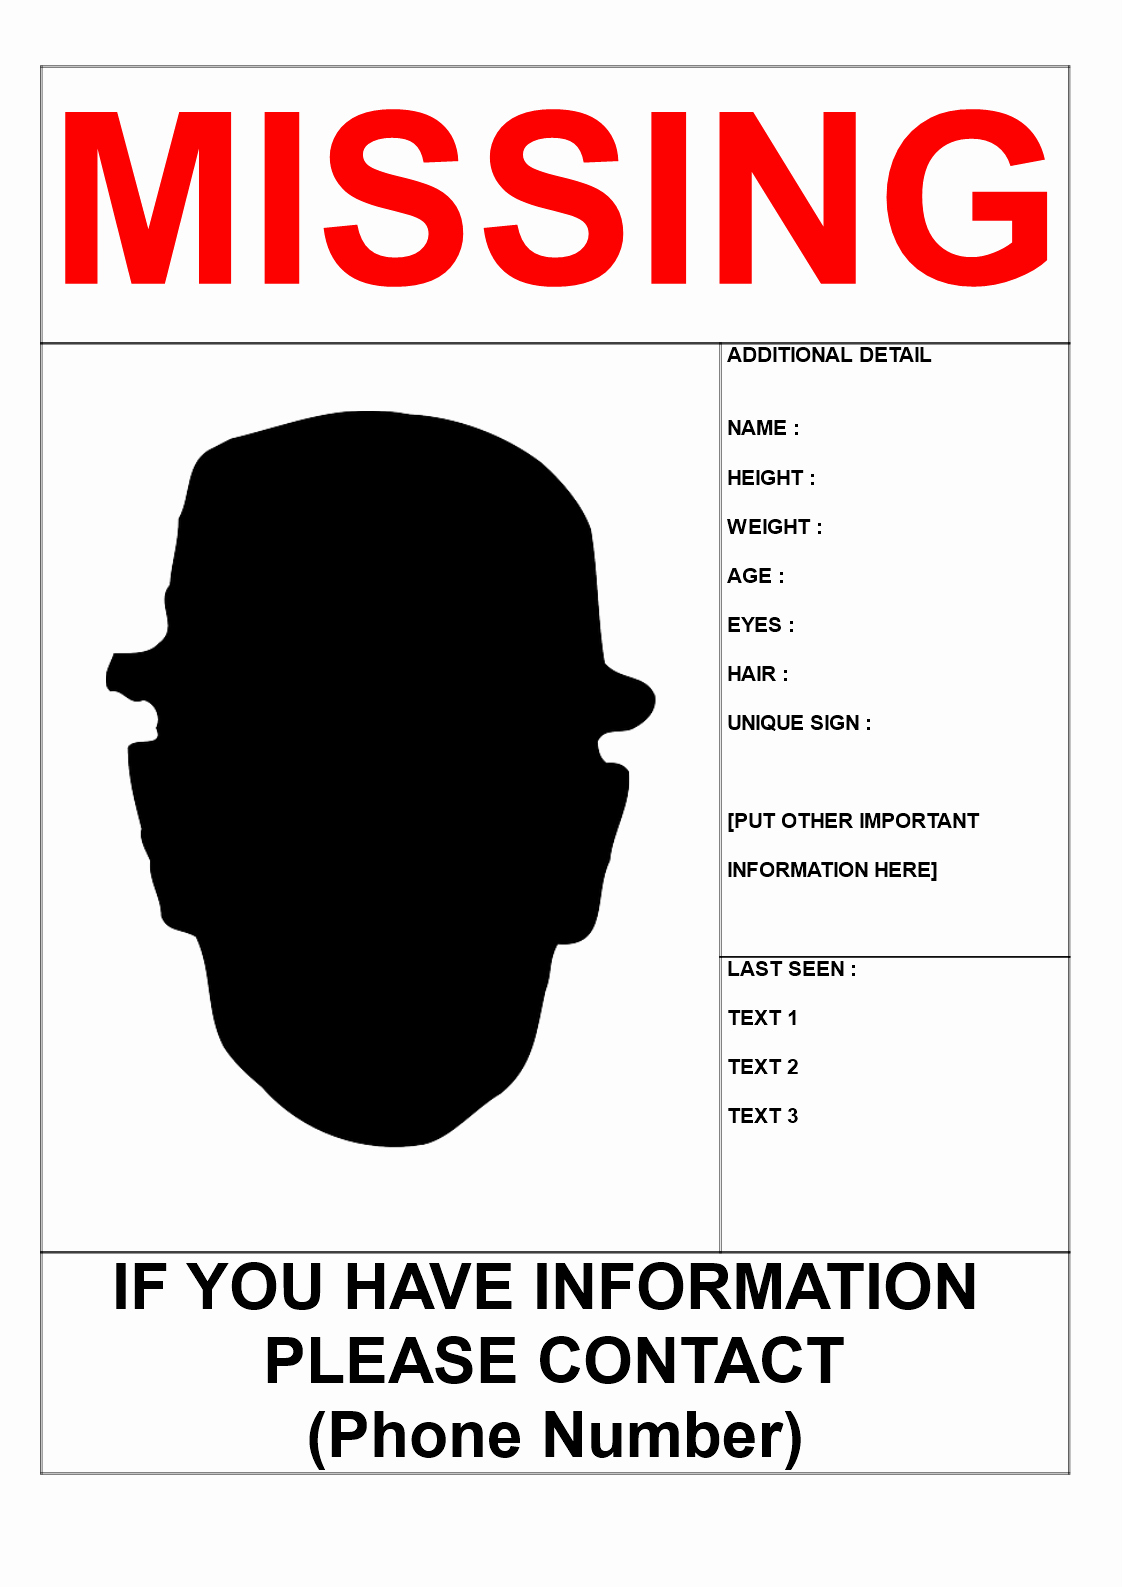 Fake Police Report Generator Elegant Free Missing Person Poster Template In A3 Size